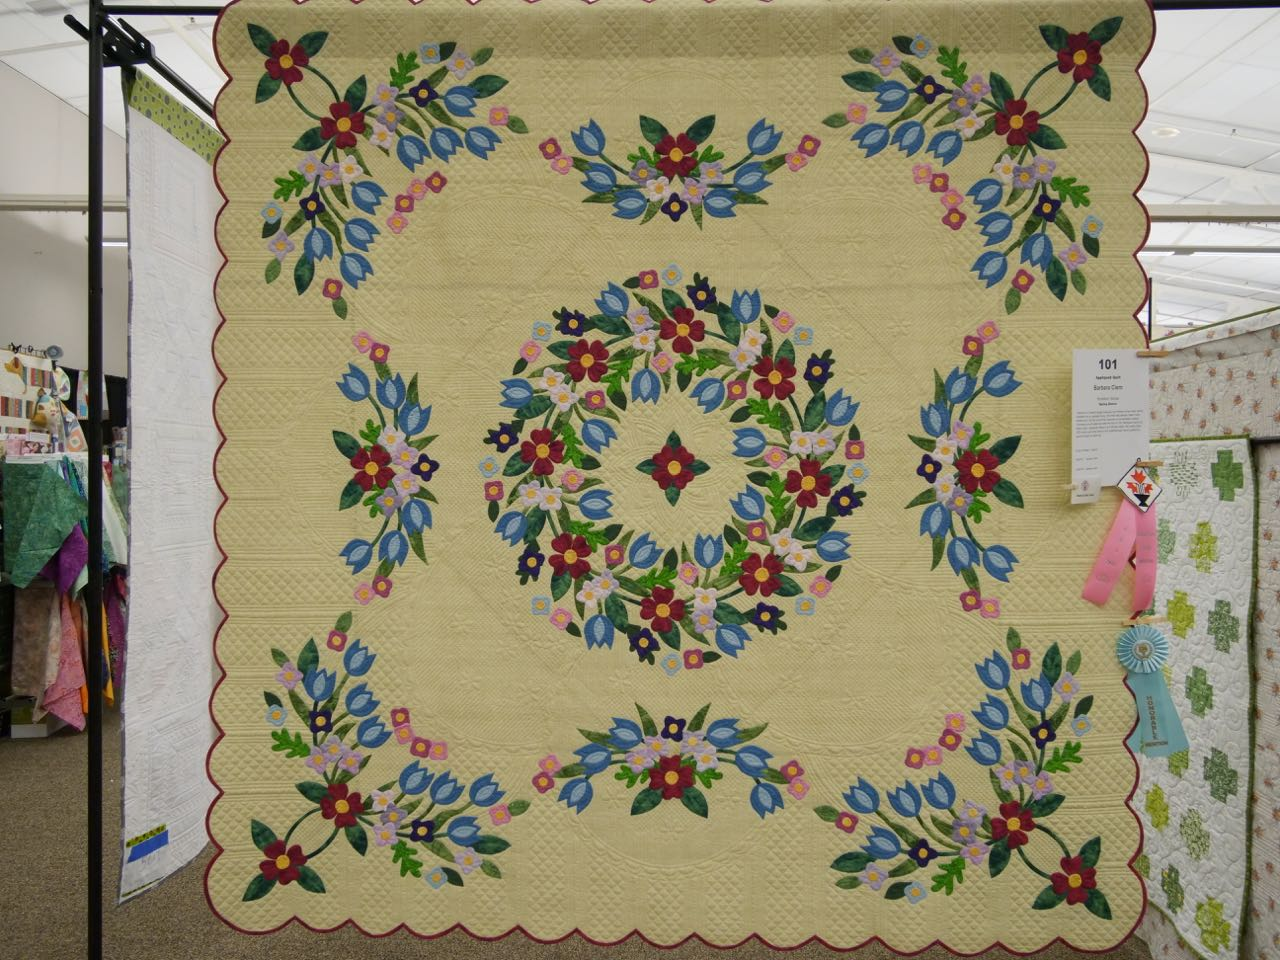 Spring Dance - Exemplary Hand Quilting